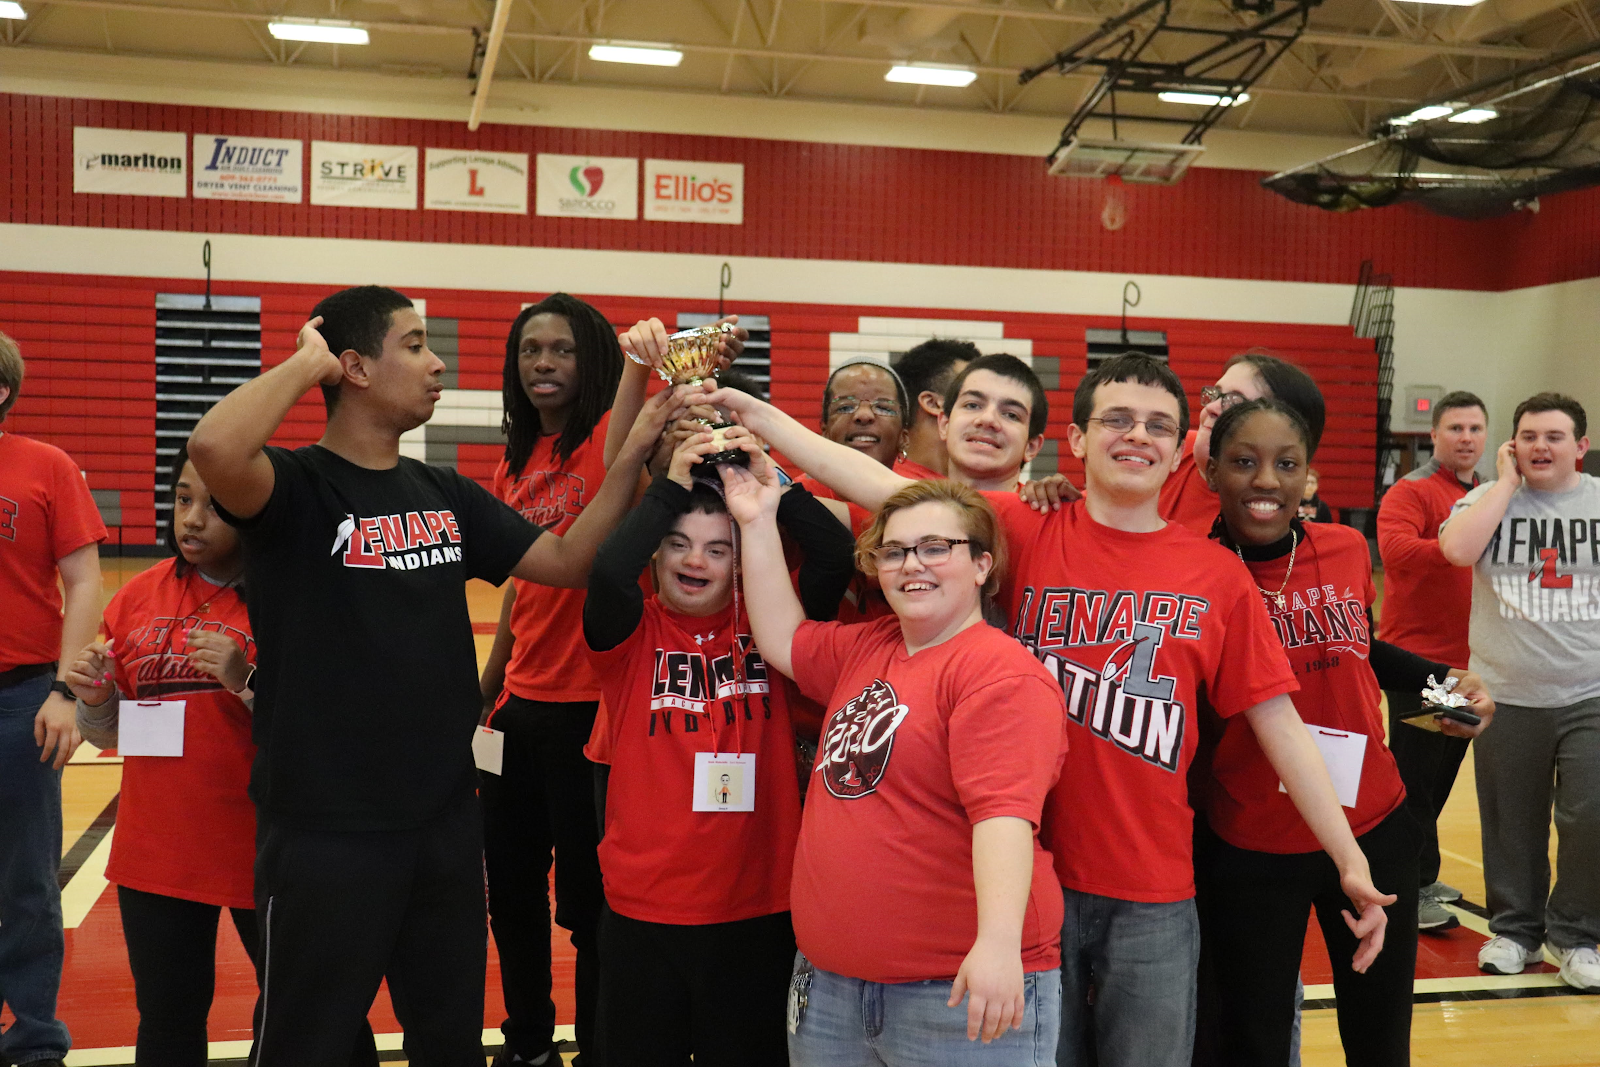 Lenape students holding a trophy.